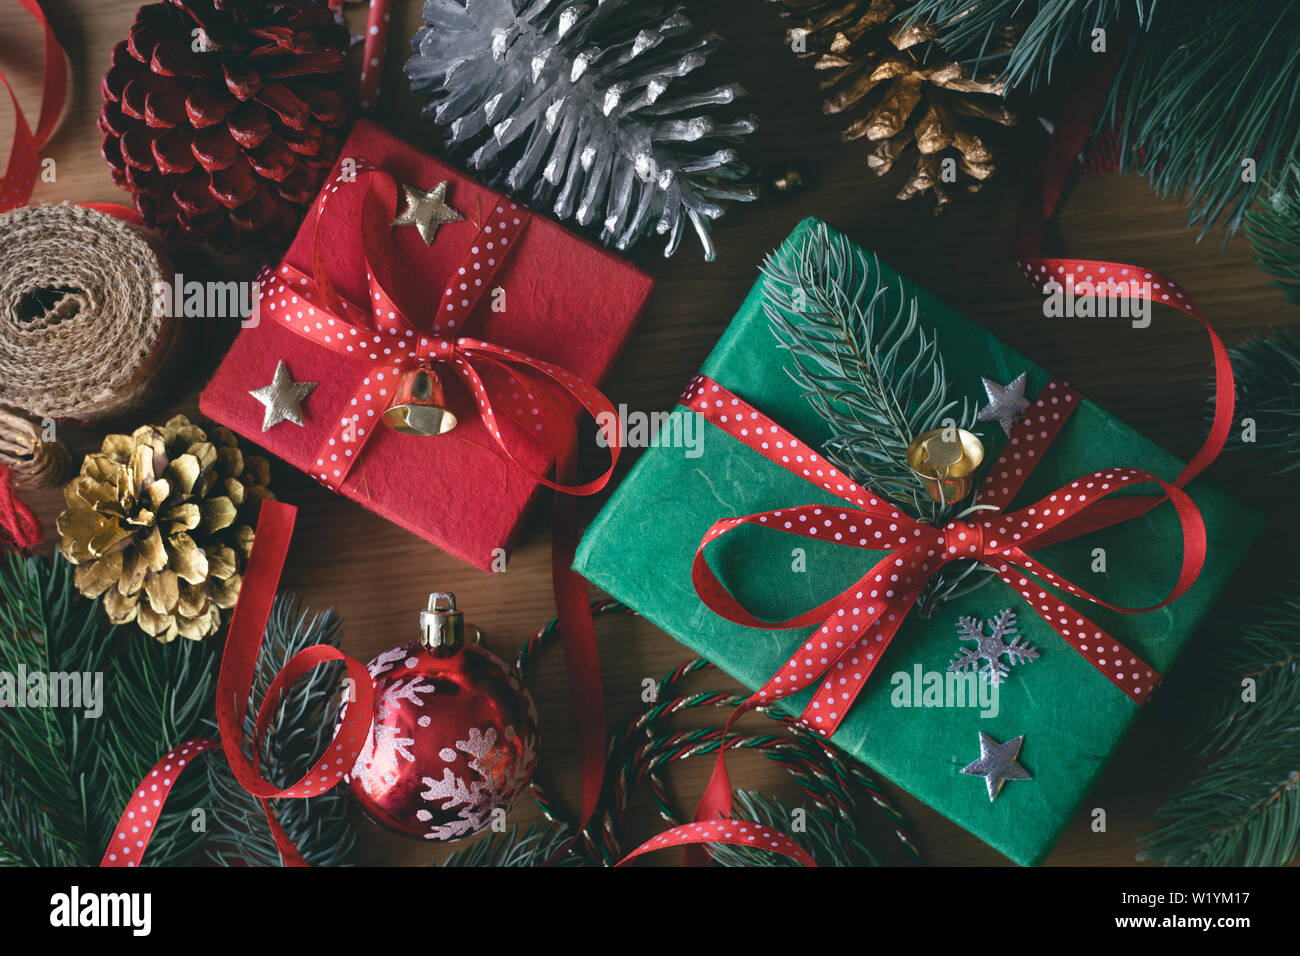 Merry Christmas Concepts With Decorate Gift Box Present And